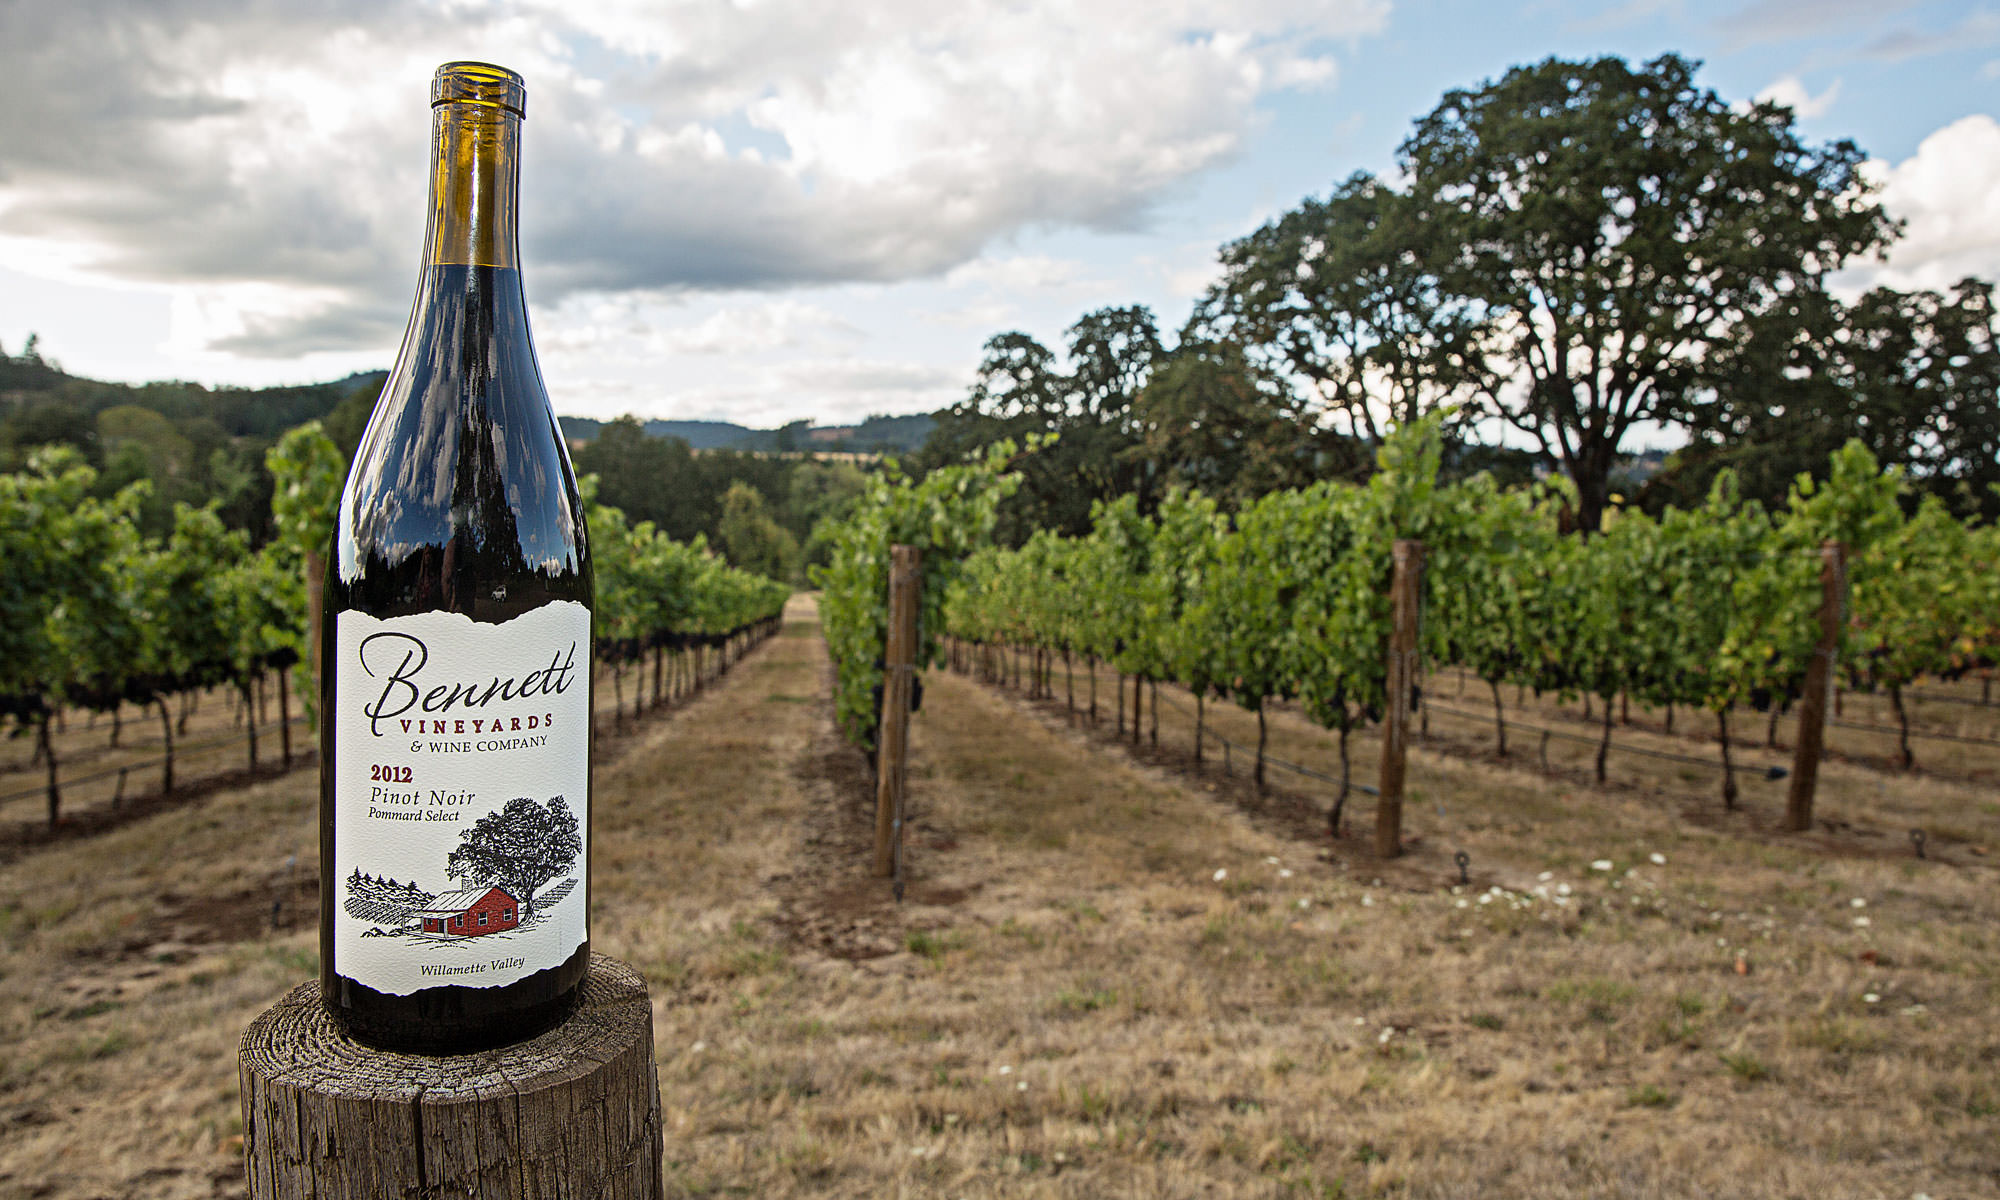 A bottle of Bennett wine stand proudly in front of vines.